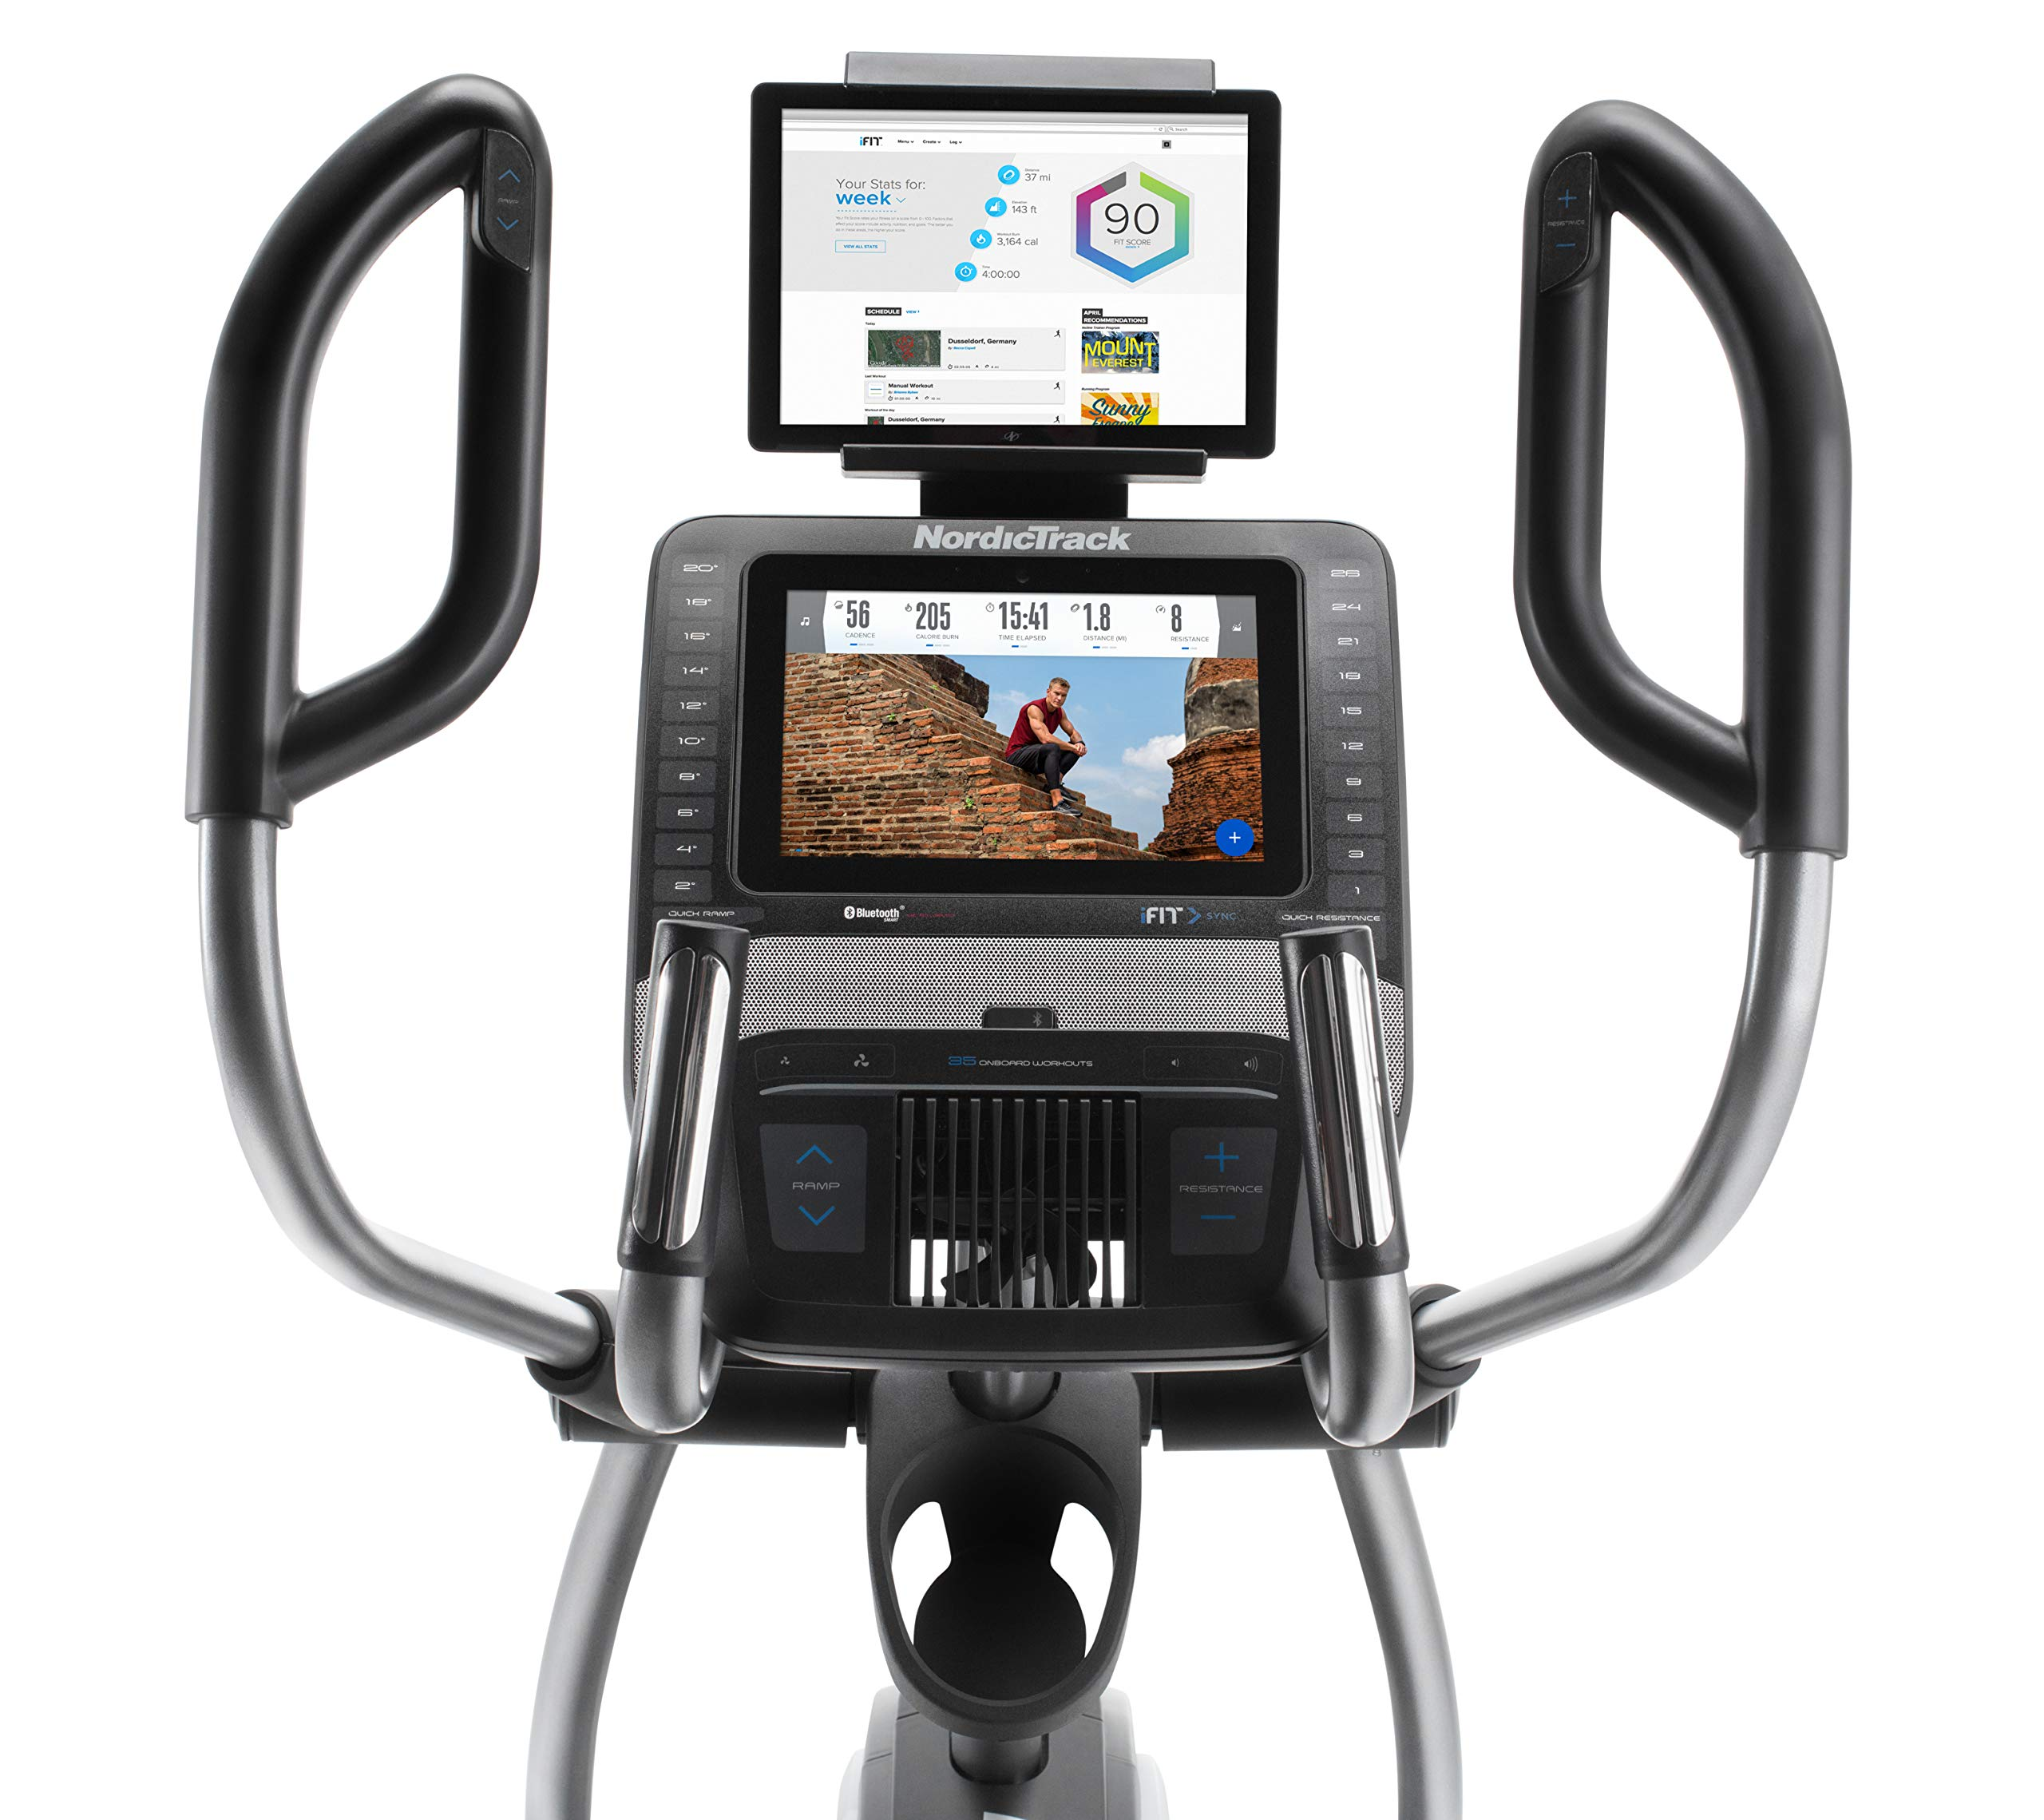 The best Elliptical Machine to Buy